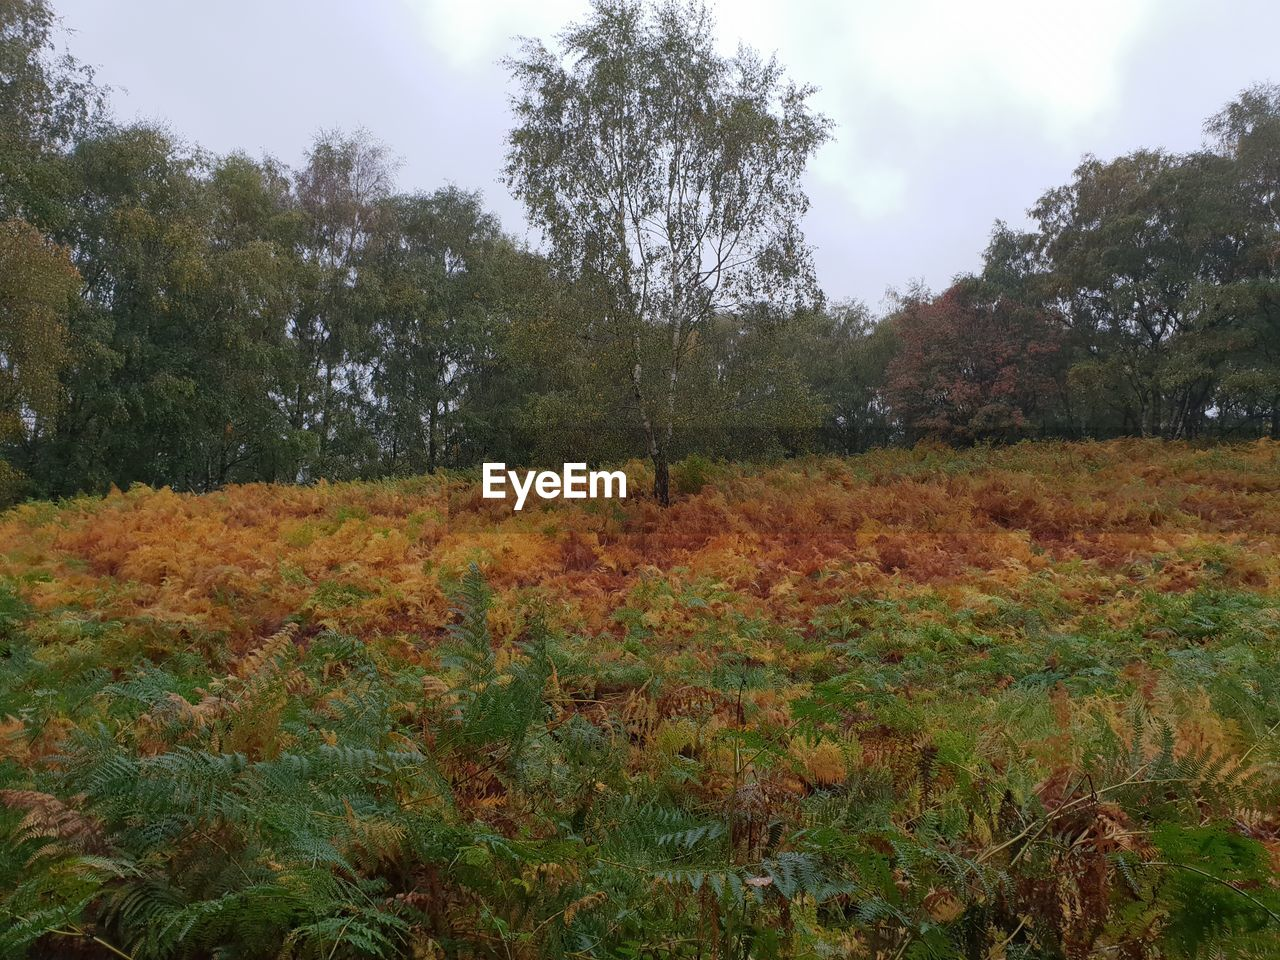 plant, land, sky, beauty in nature, nature, growth, tranquility, tree, field, landscape, environment, no people, autumn, tranquil scene, day, outdoors, leaf, plant part, scenics - nature, change, leaves